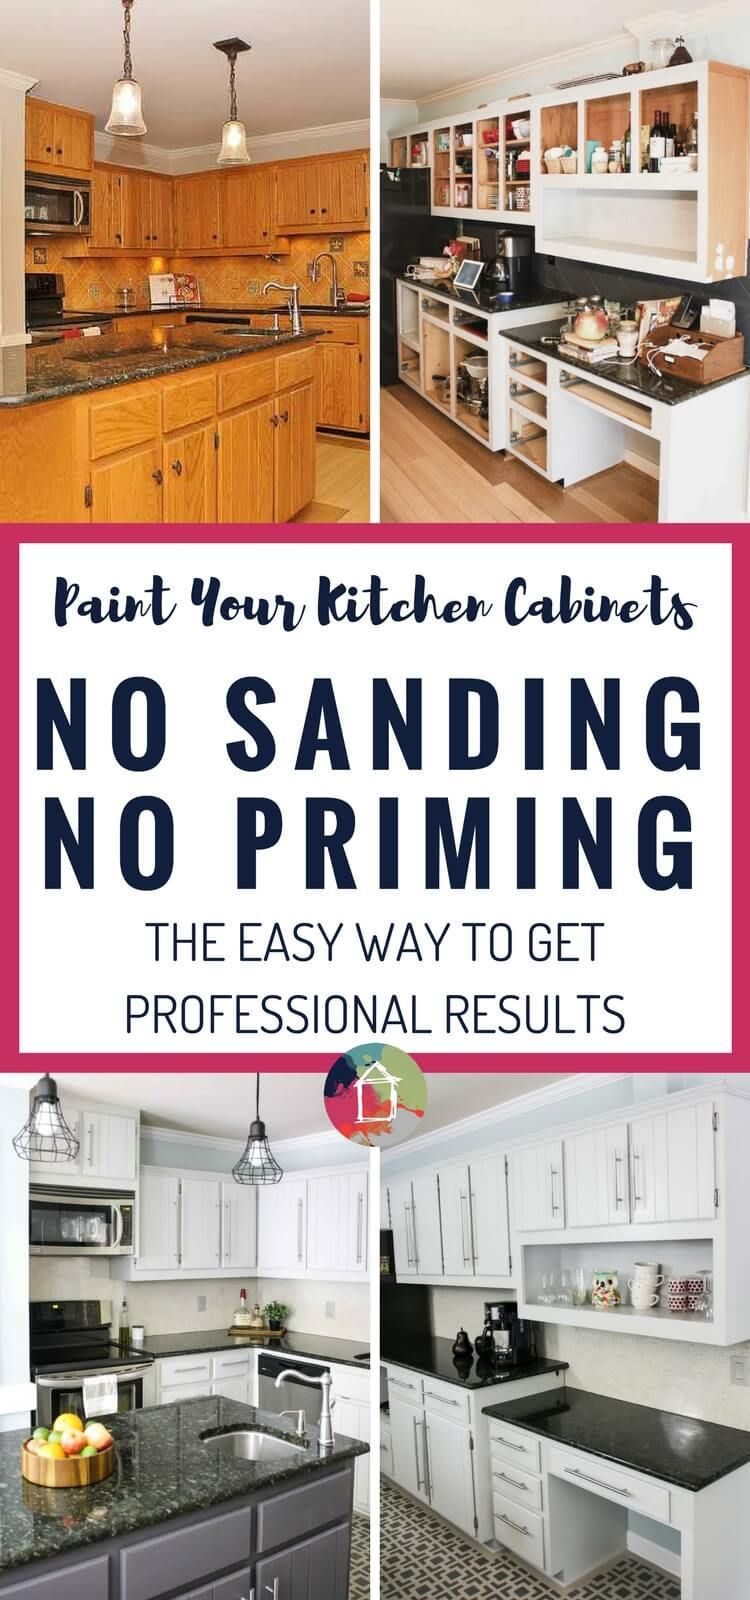 How To Paint Kitchen Cabinets Without Sanding Or Priming Step By Step Kitchen Diy Makeover Diy Kitchen Cabinets Painting Kitchen Cabinets